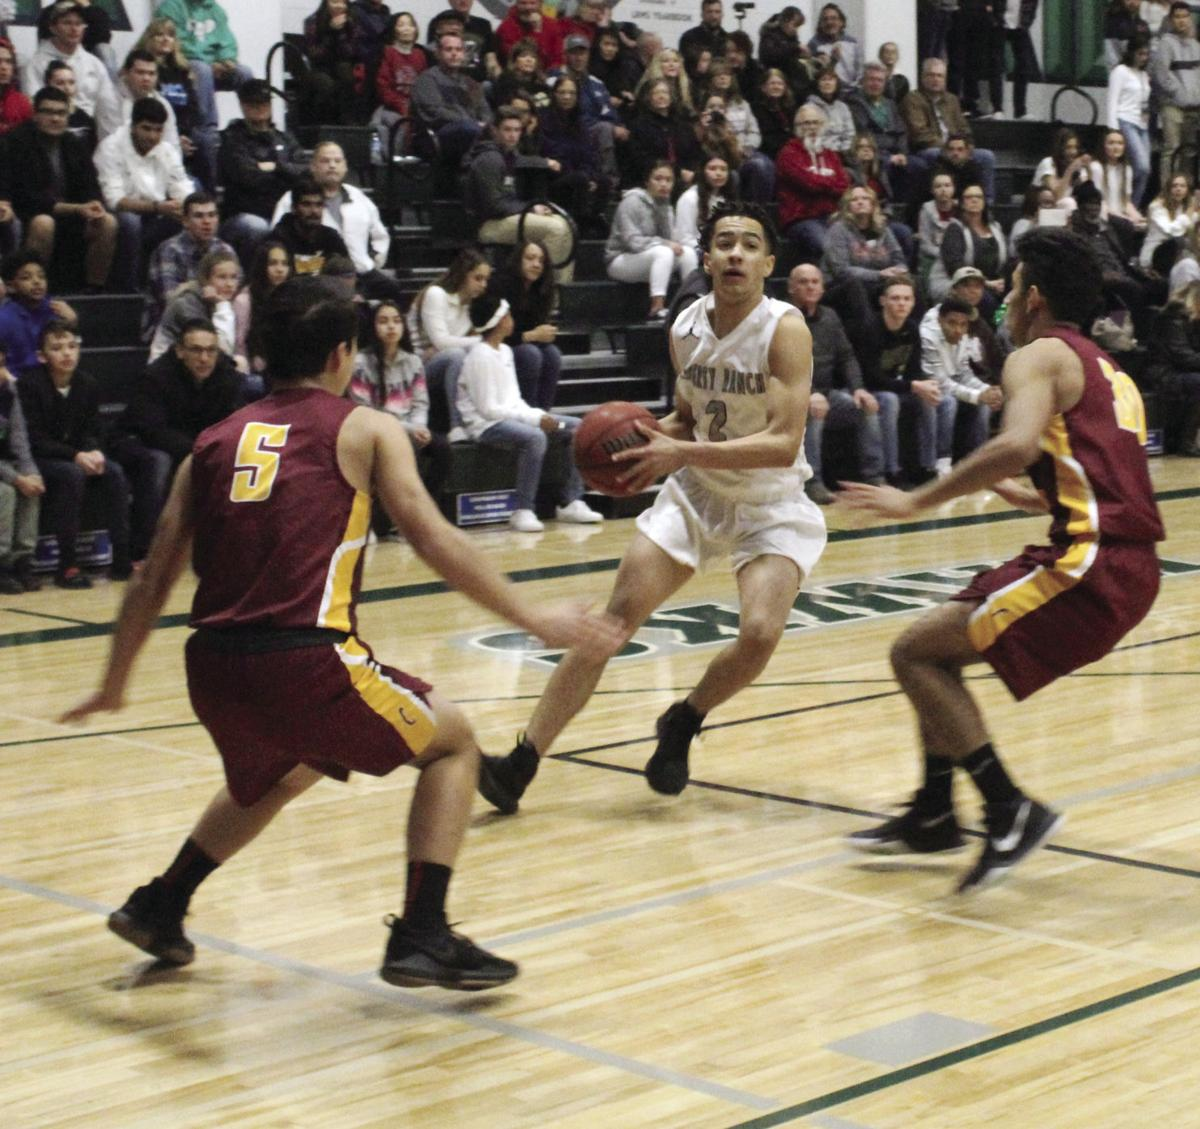 2018 Boys Basketball Preview: Can the Hawks stay at the top